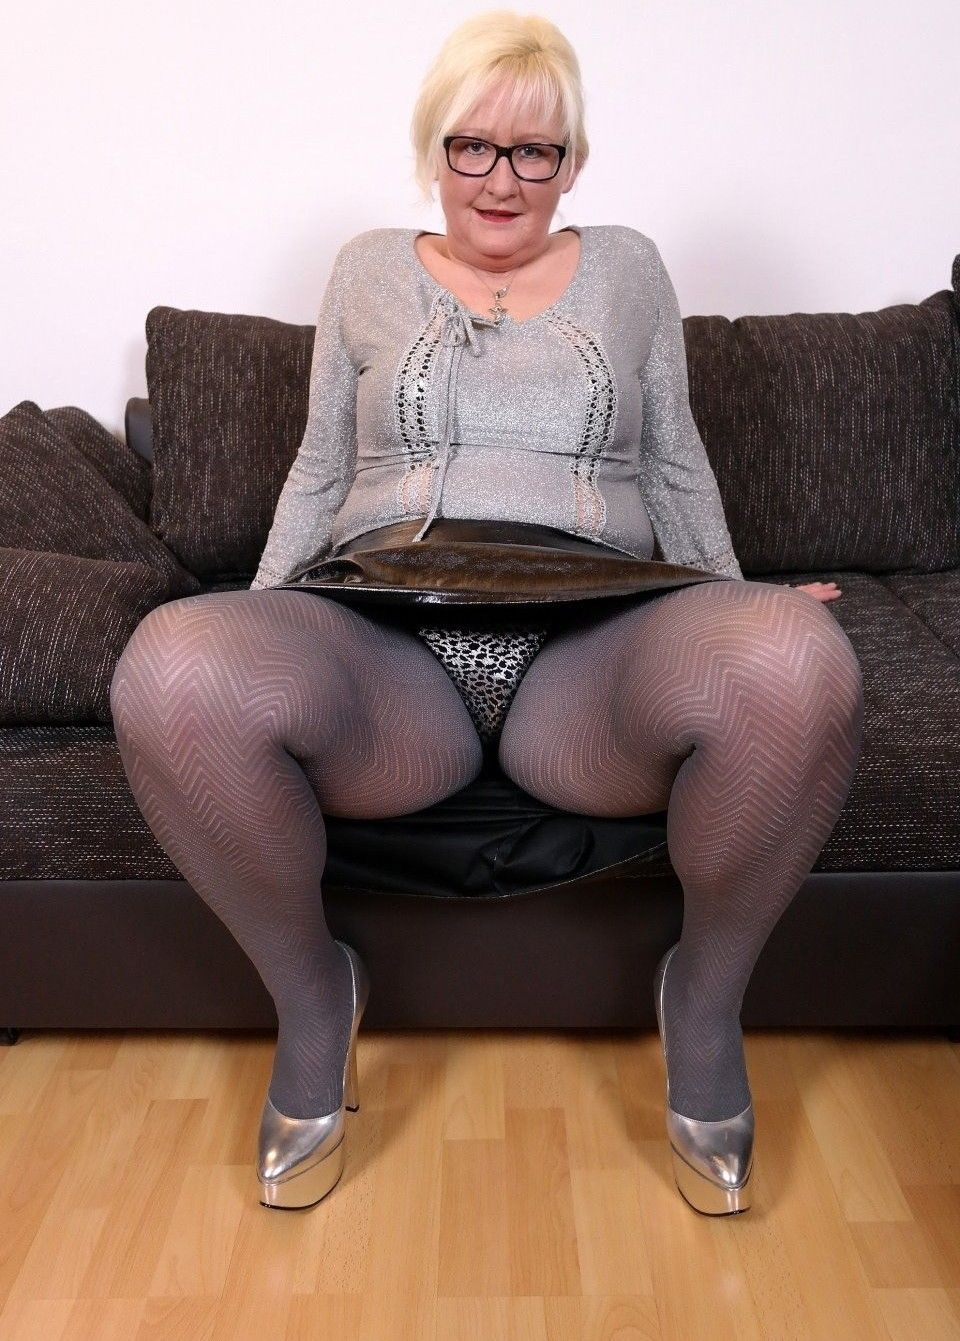 Mature german women in pantyhose